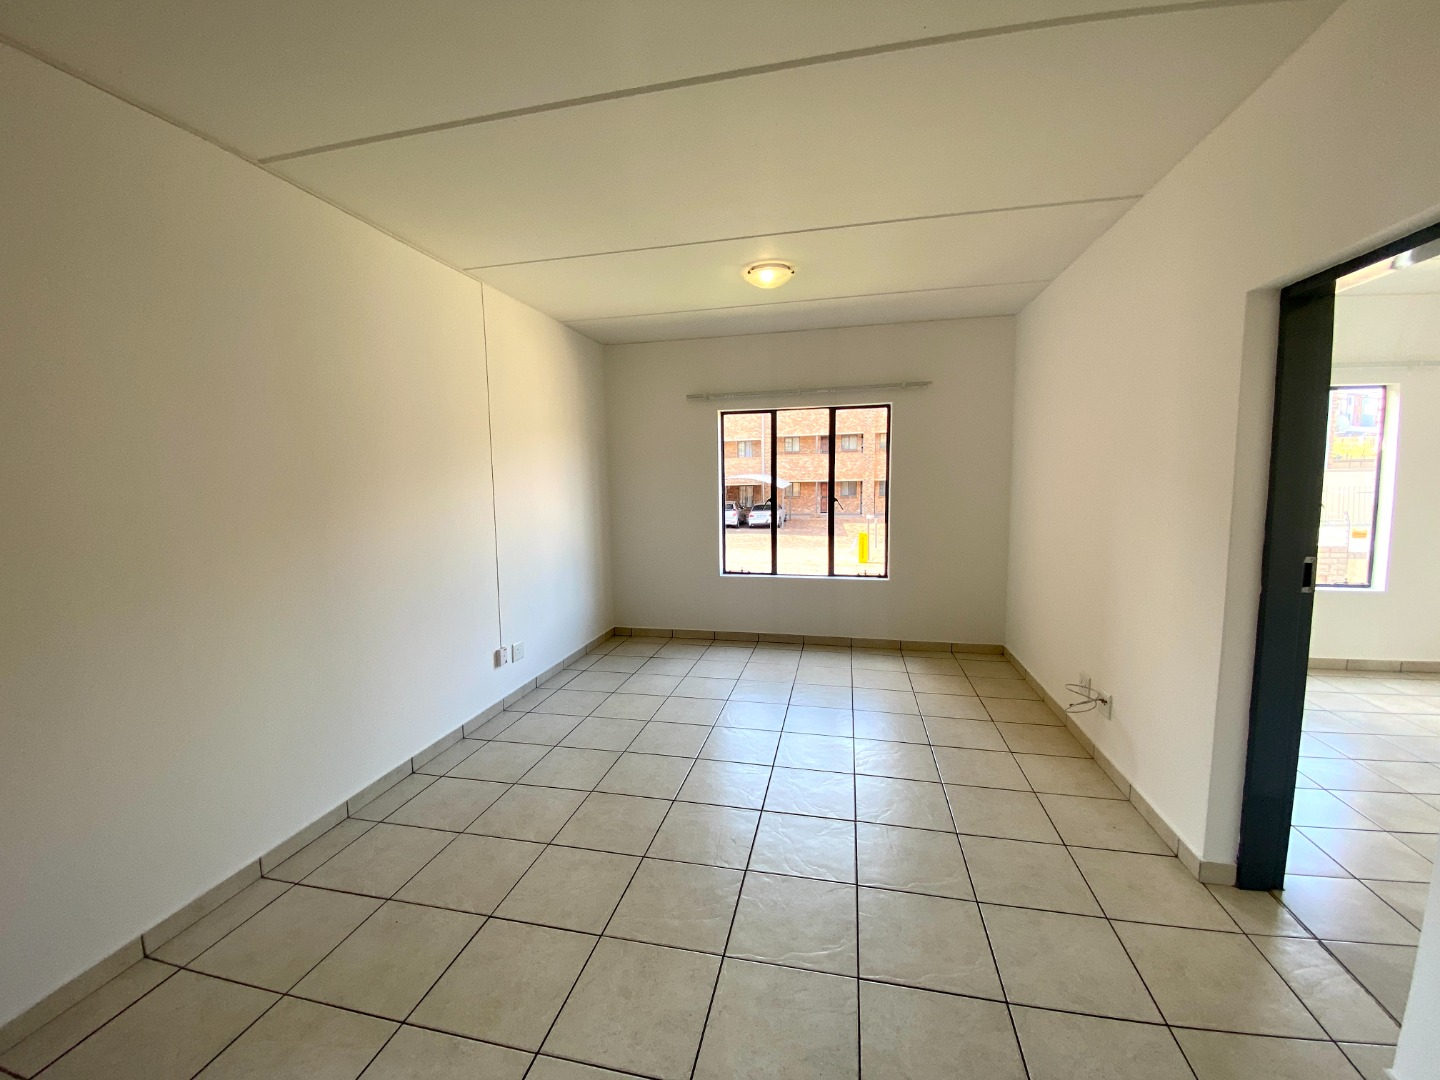 2 Bedroom Apartment / Flat To Rent in Grand Central